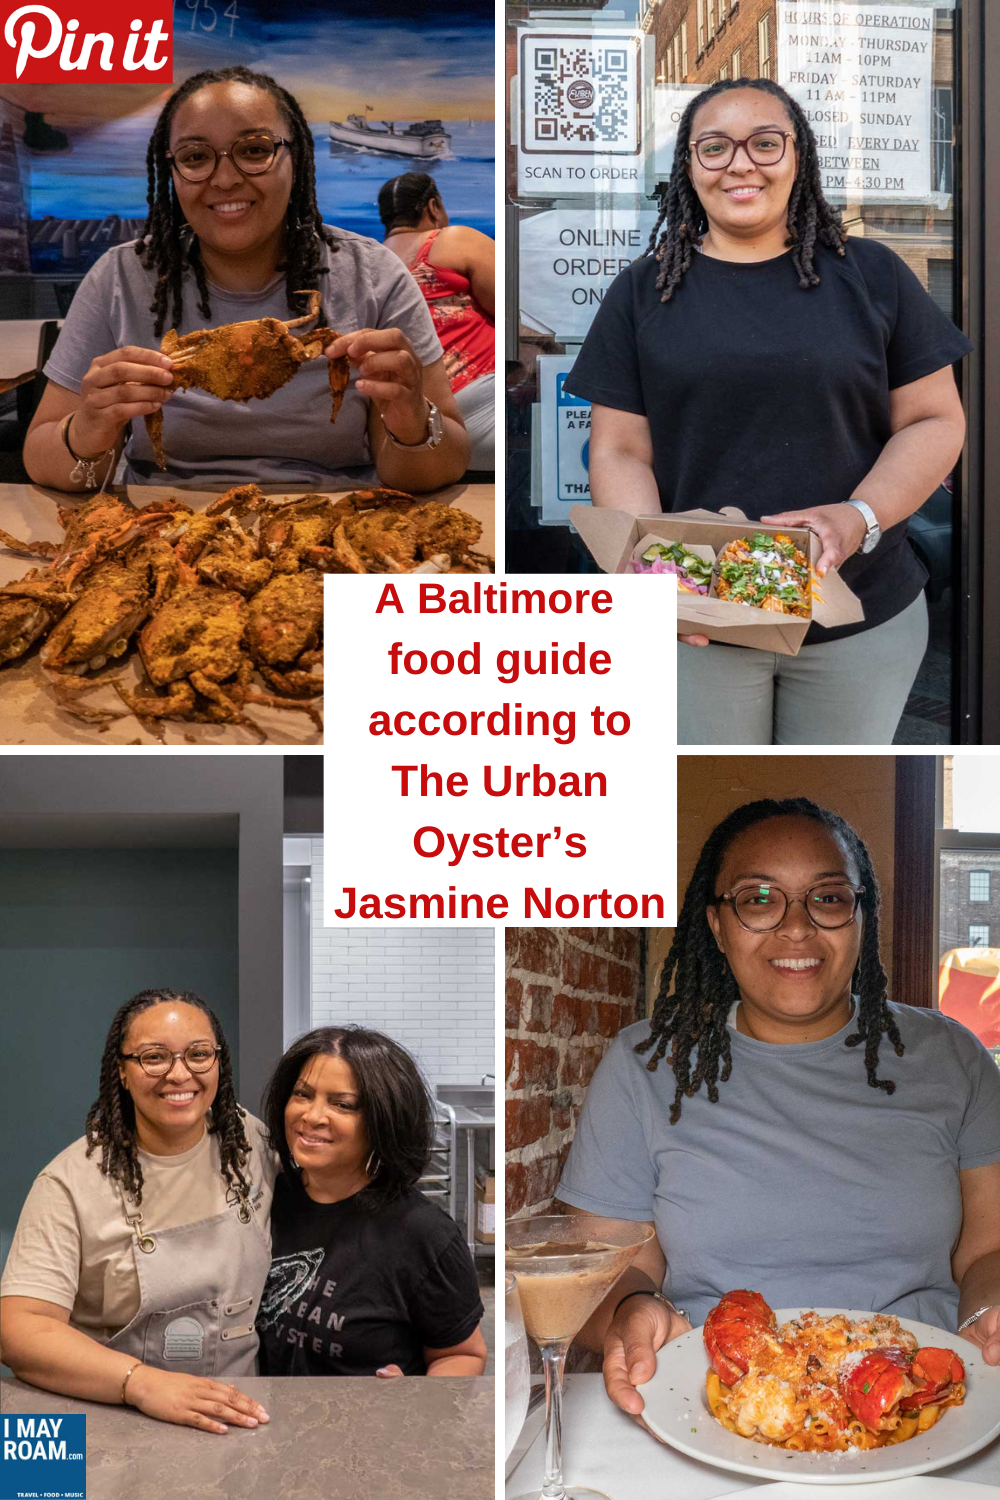 Pinterest A Baltimore food guide according to The Urban Oyster's Jasmine Norton